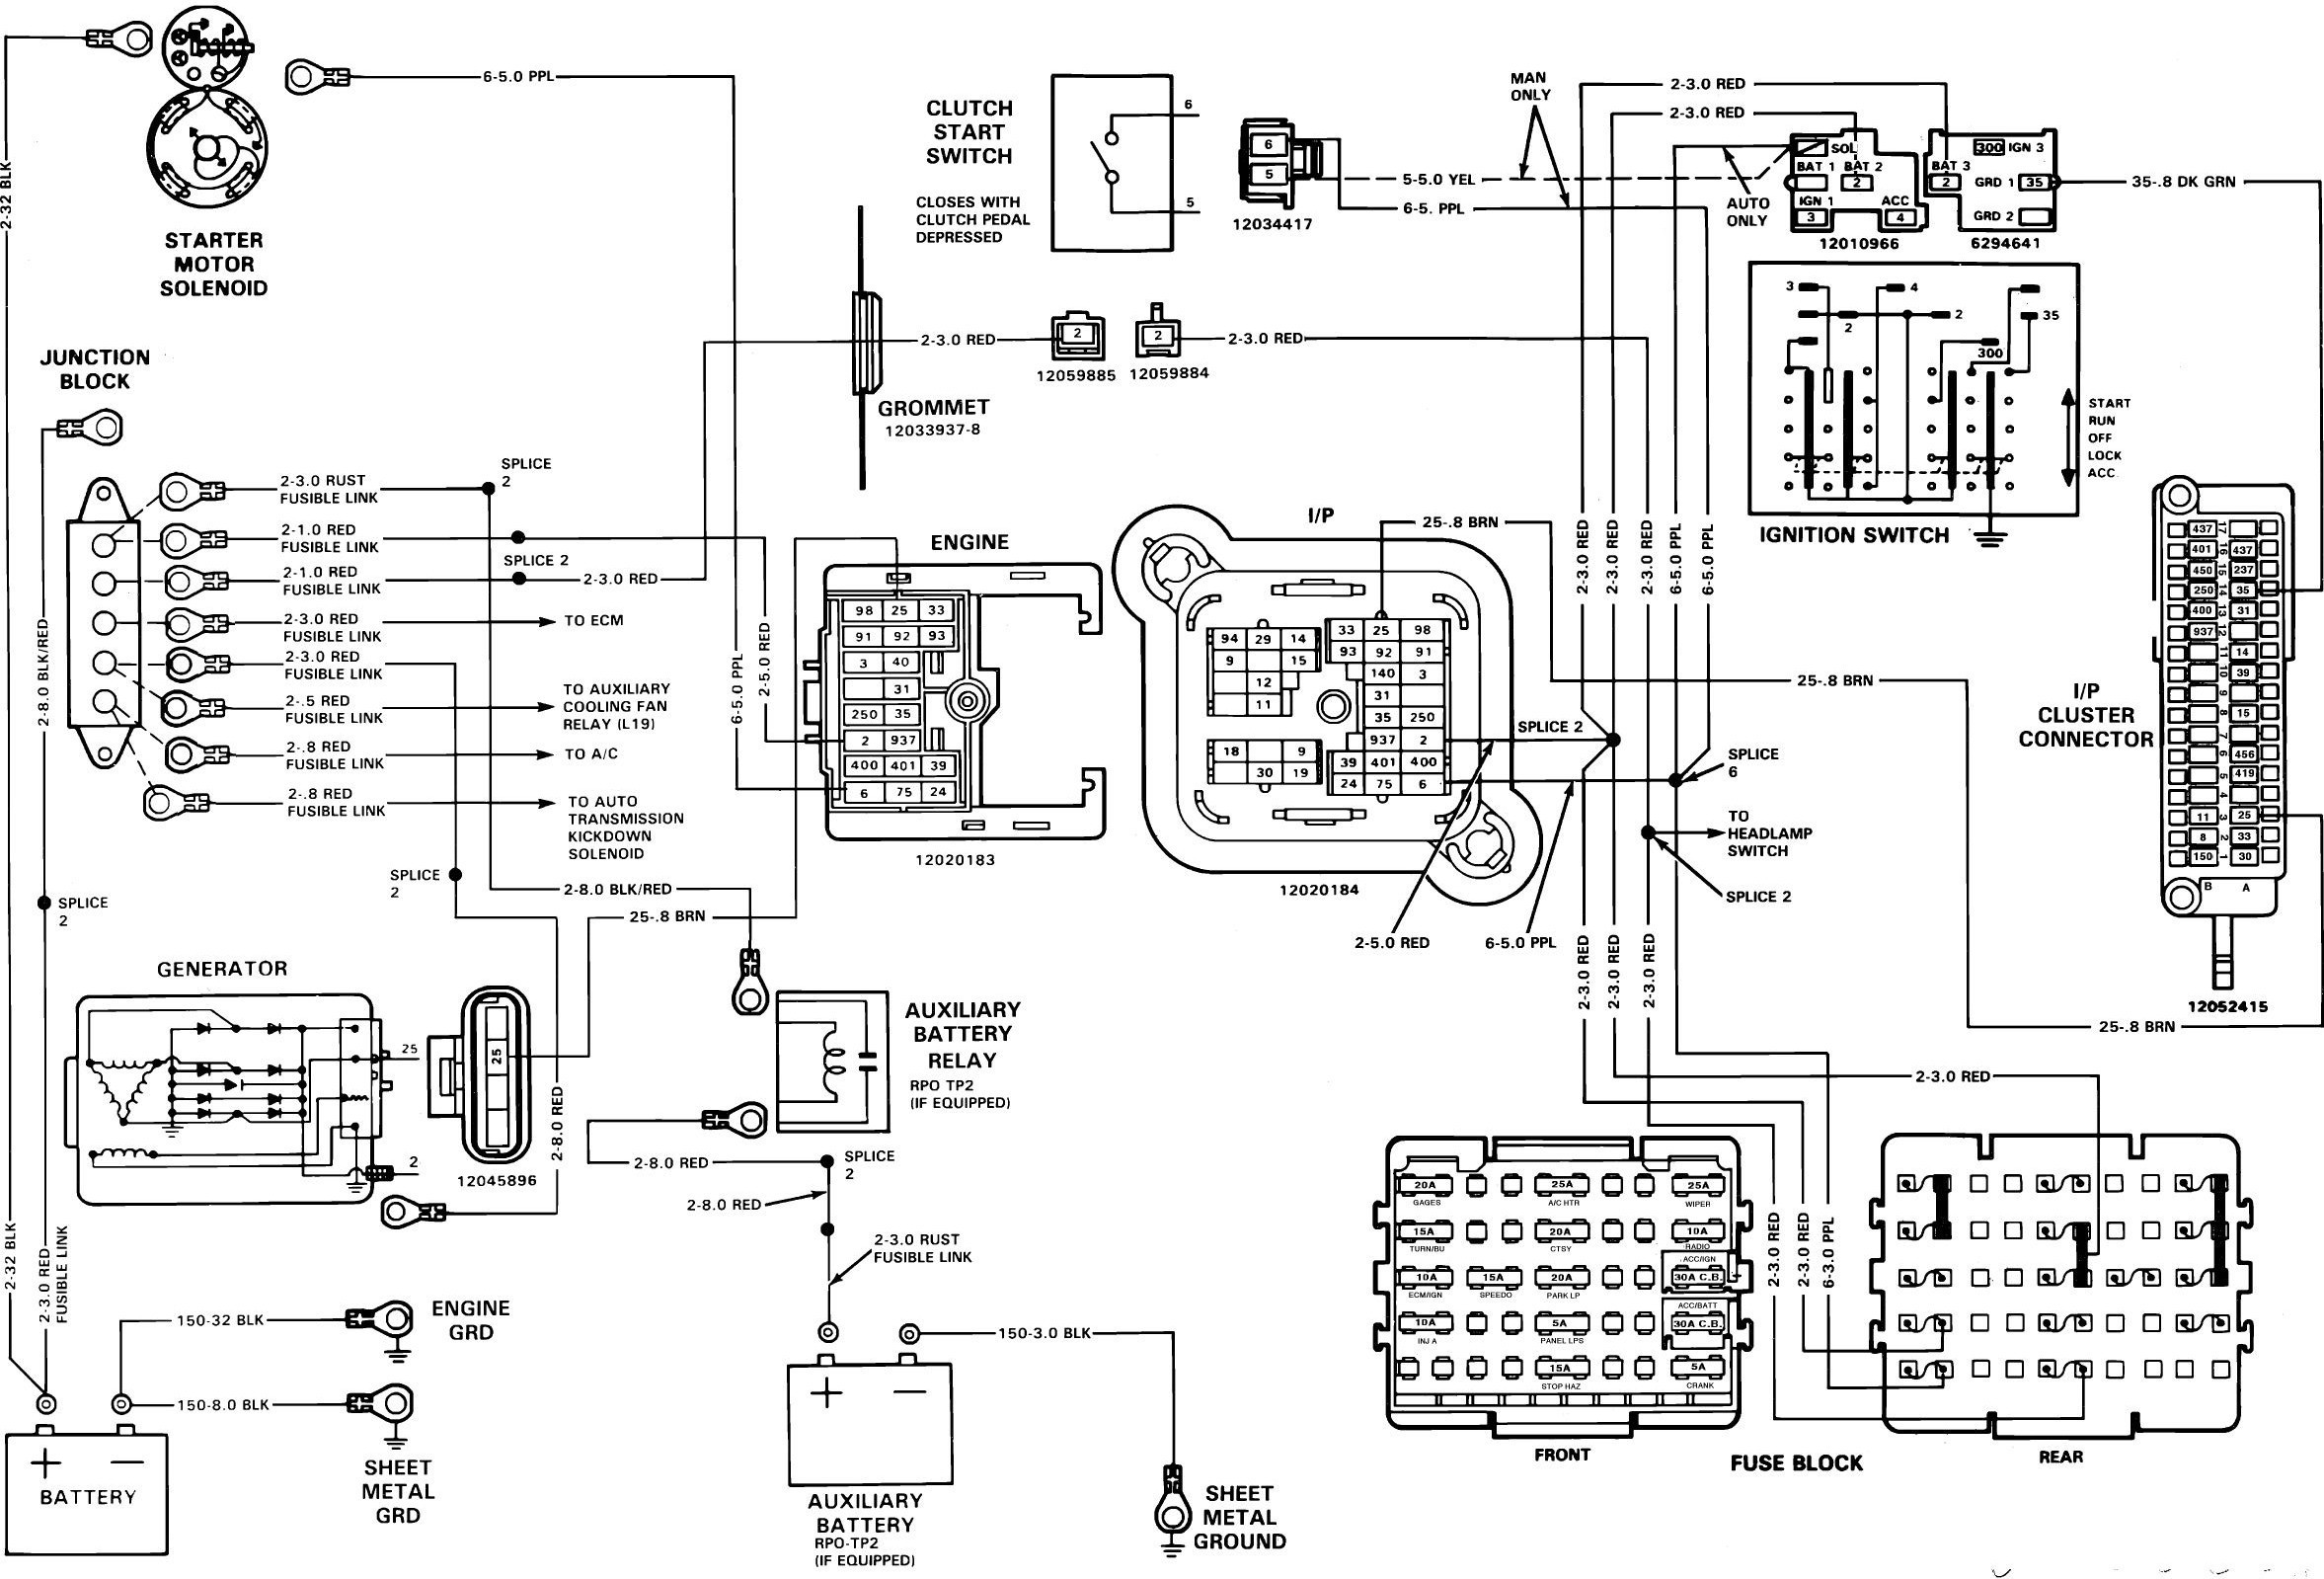 Wiring Diagram 89 Chevy Truck | Wiring Schematic Diagram on